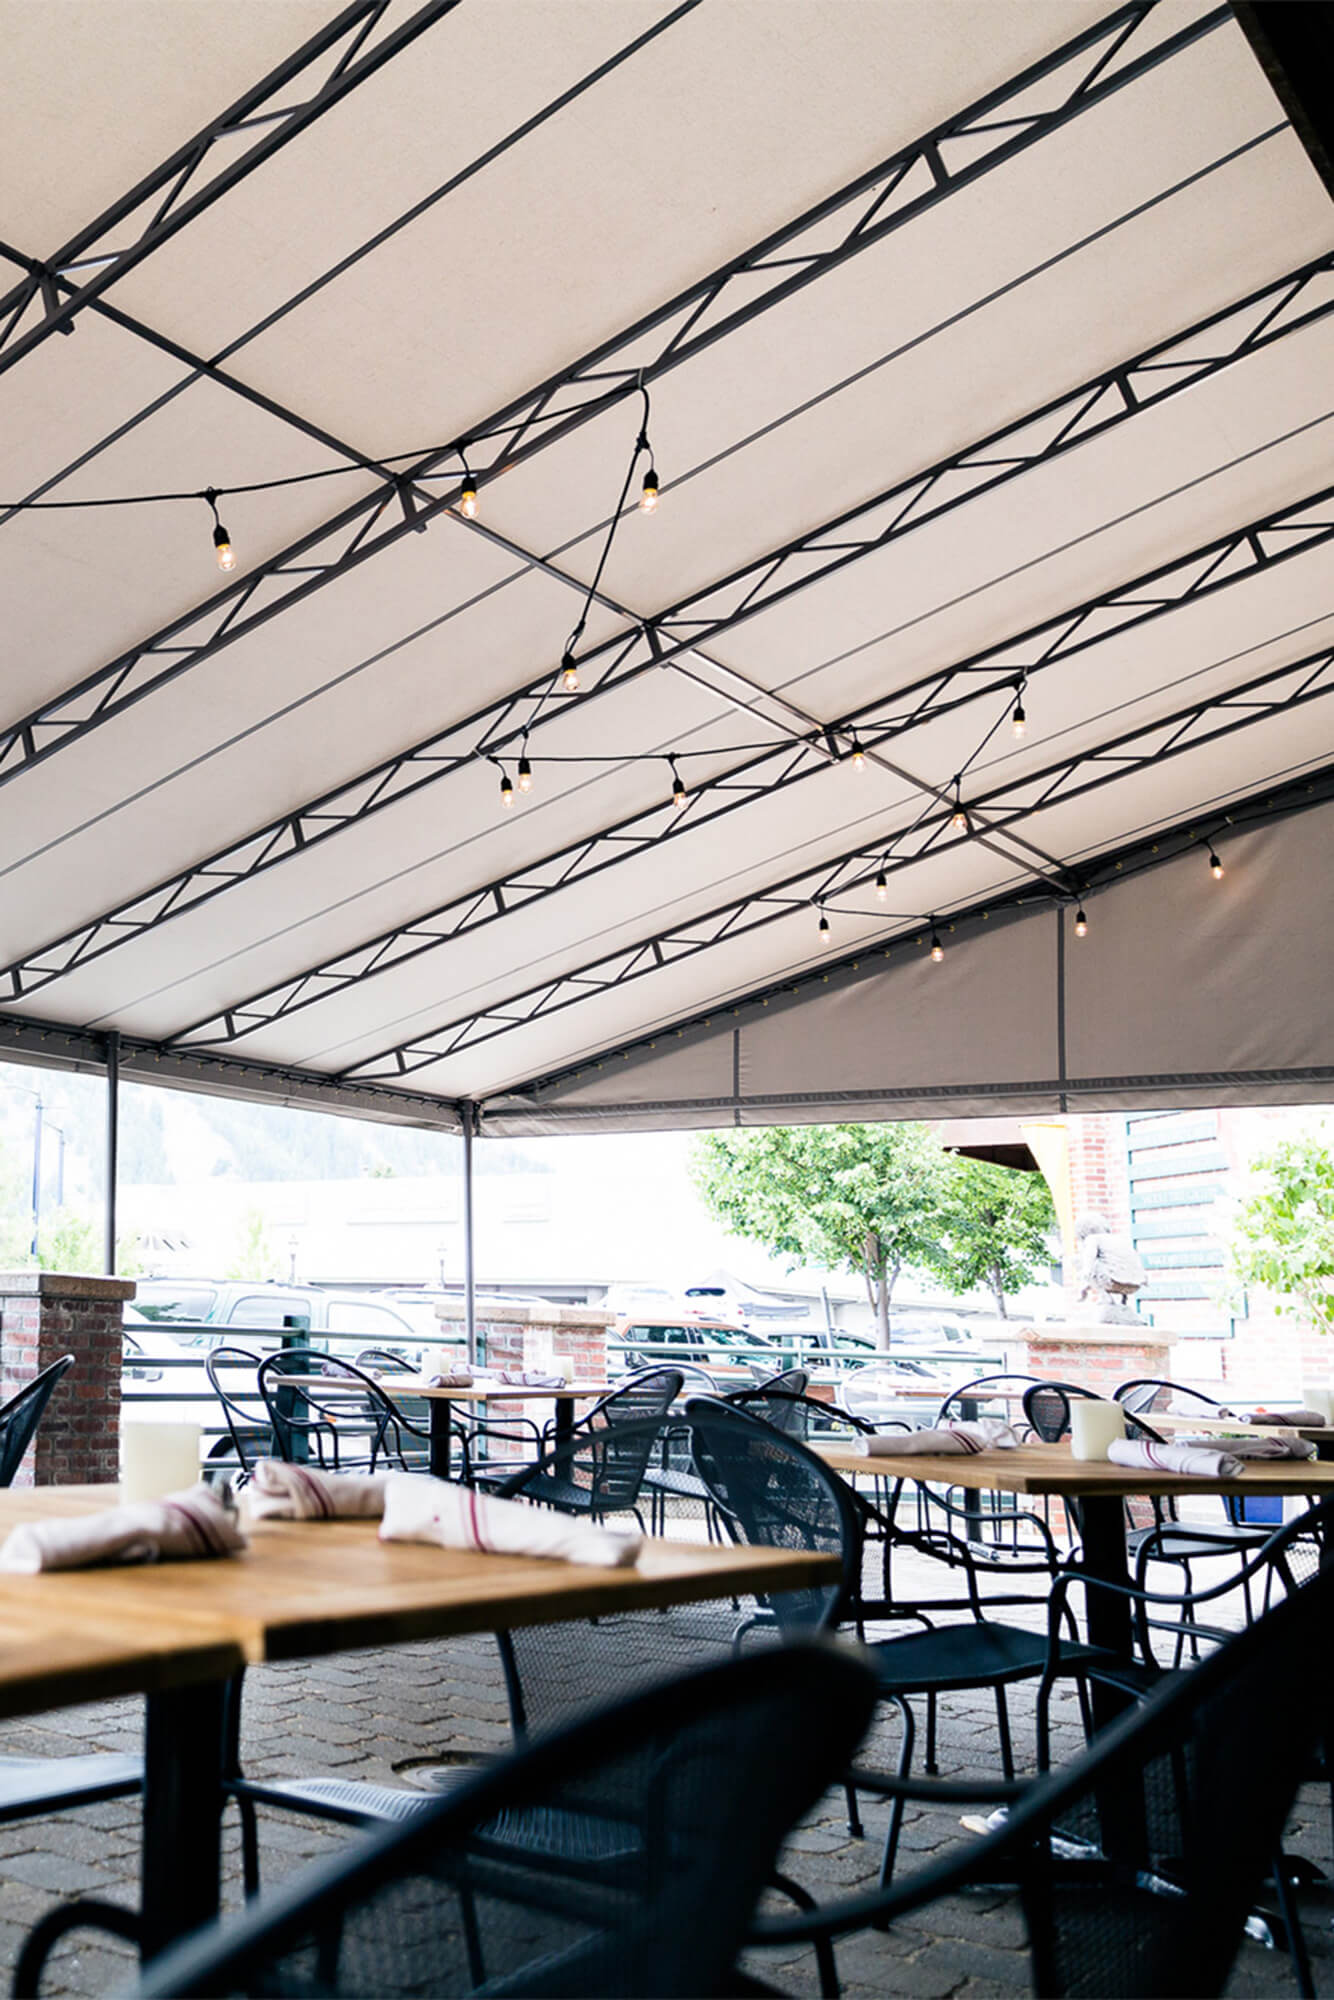 Fixed Frame Awning With Beige Sunbrella Fabric Covering Restaurant Patio